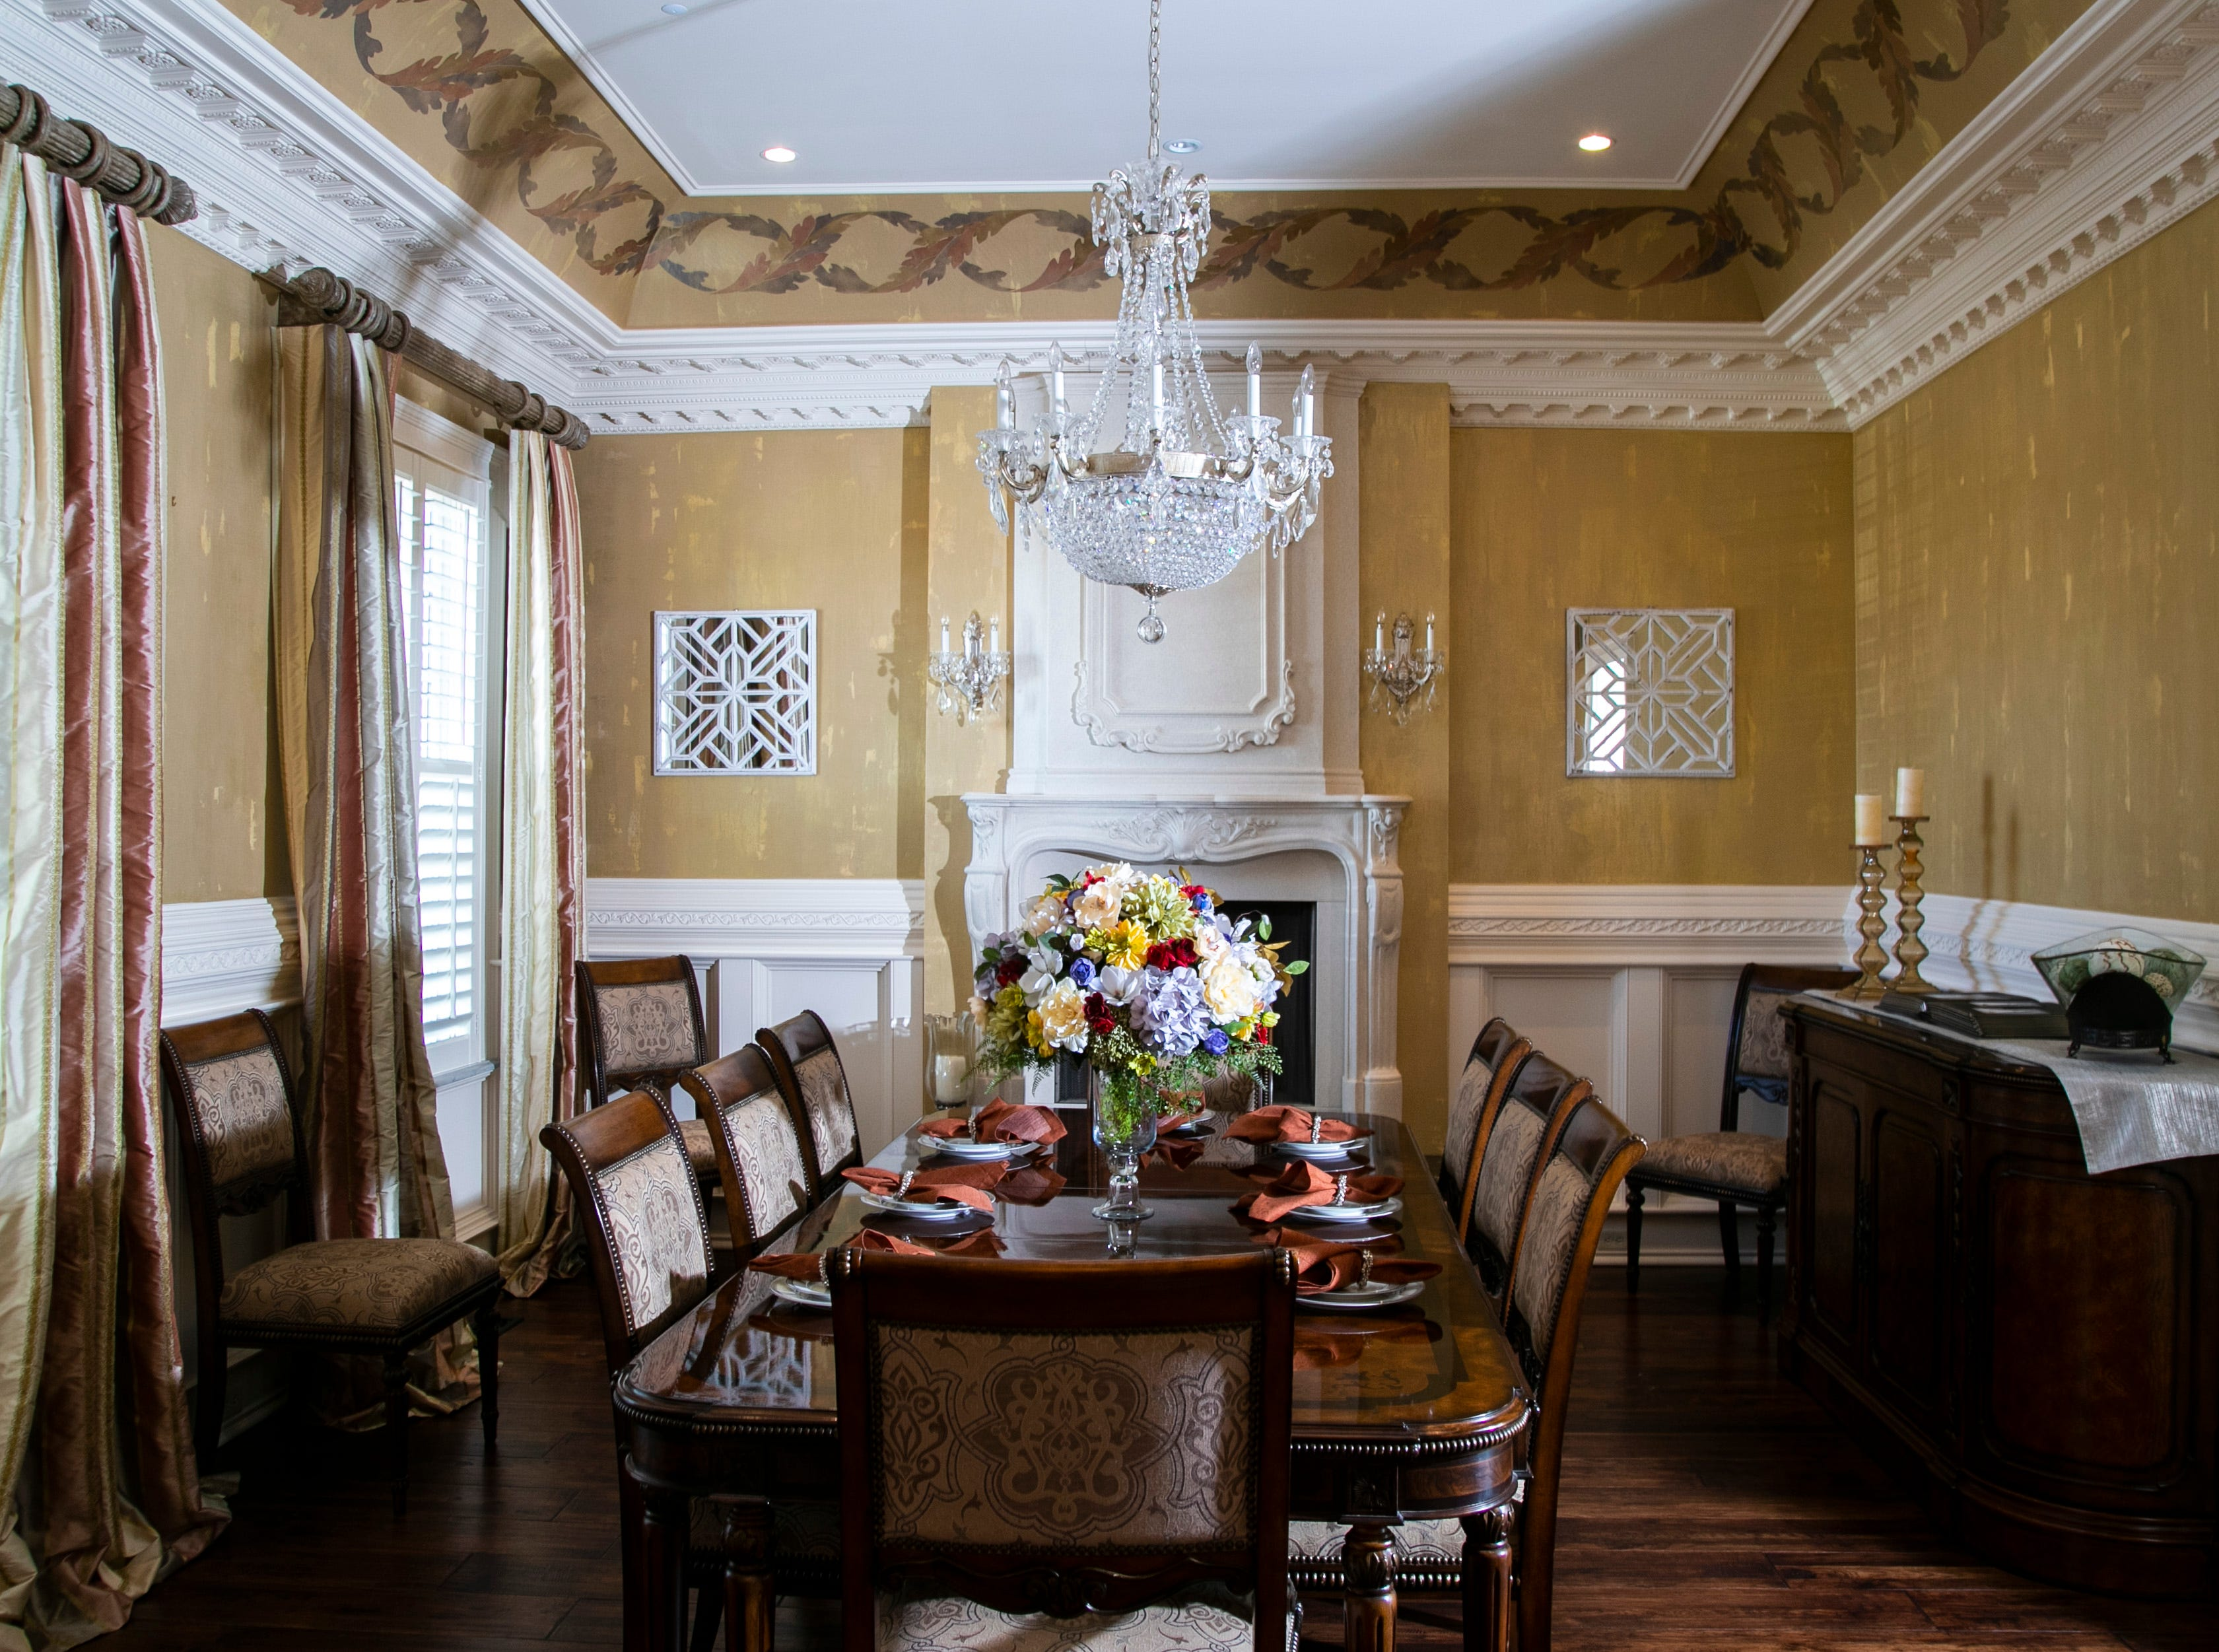 The formal dining room of the Mack home.